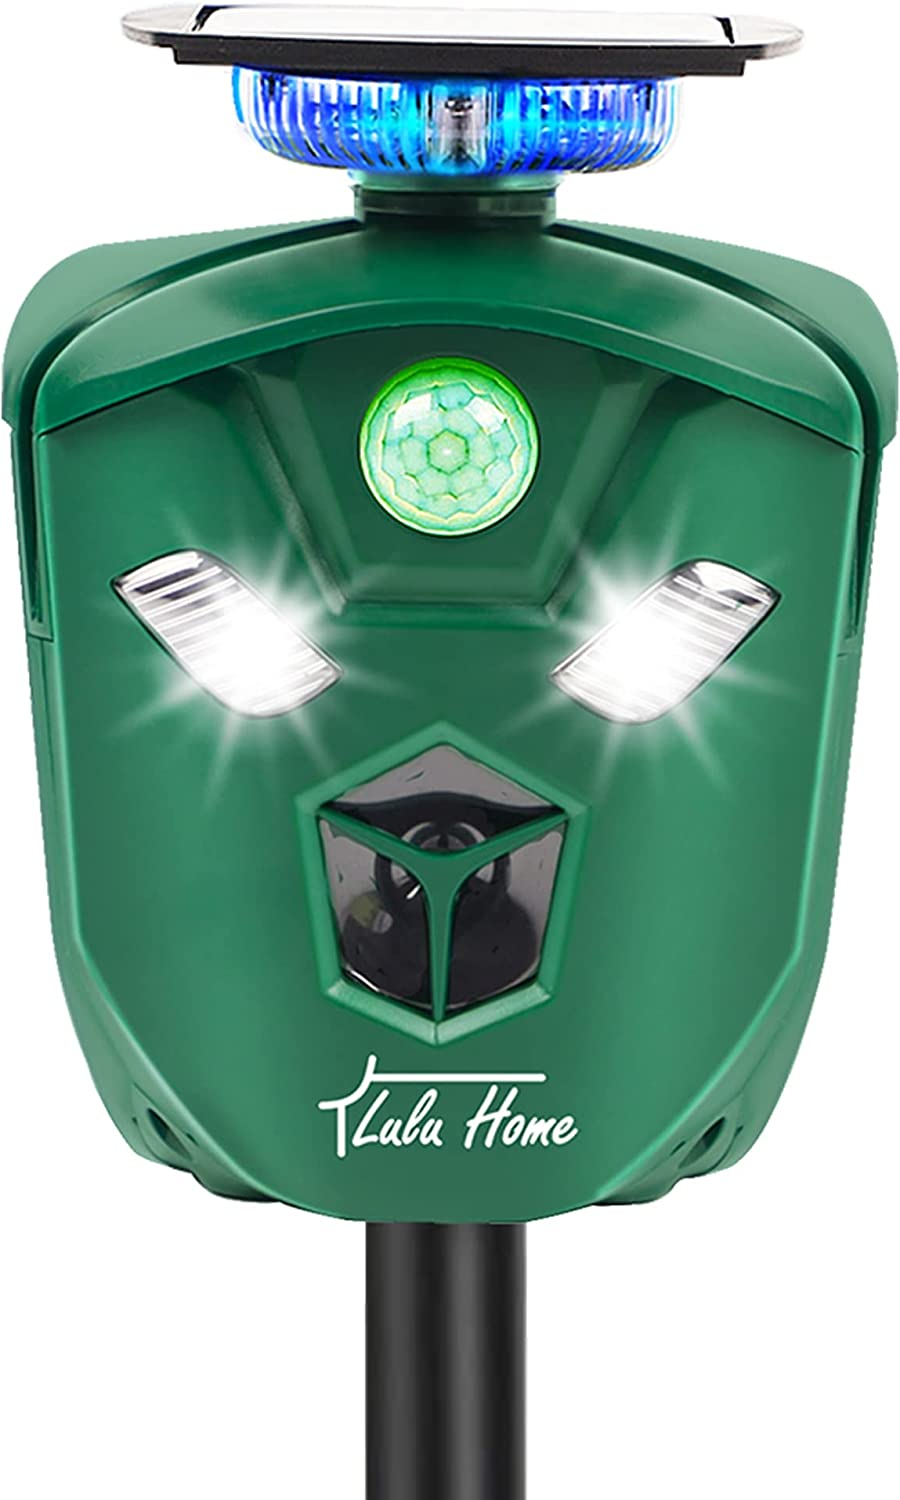 Lulu Home 360 Animal Repeller, Solar Powered Ultrasonic Animal Deterrent with 3-Side Motion Activated Flashing Lights, Waterproof Rodent Repellent Repelling Dogs, Wild Cat, Raccoon, Rabbit, Deer